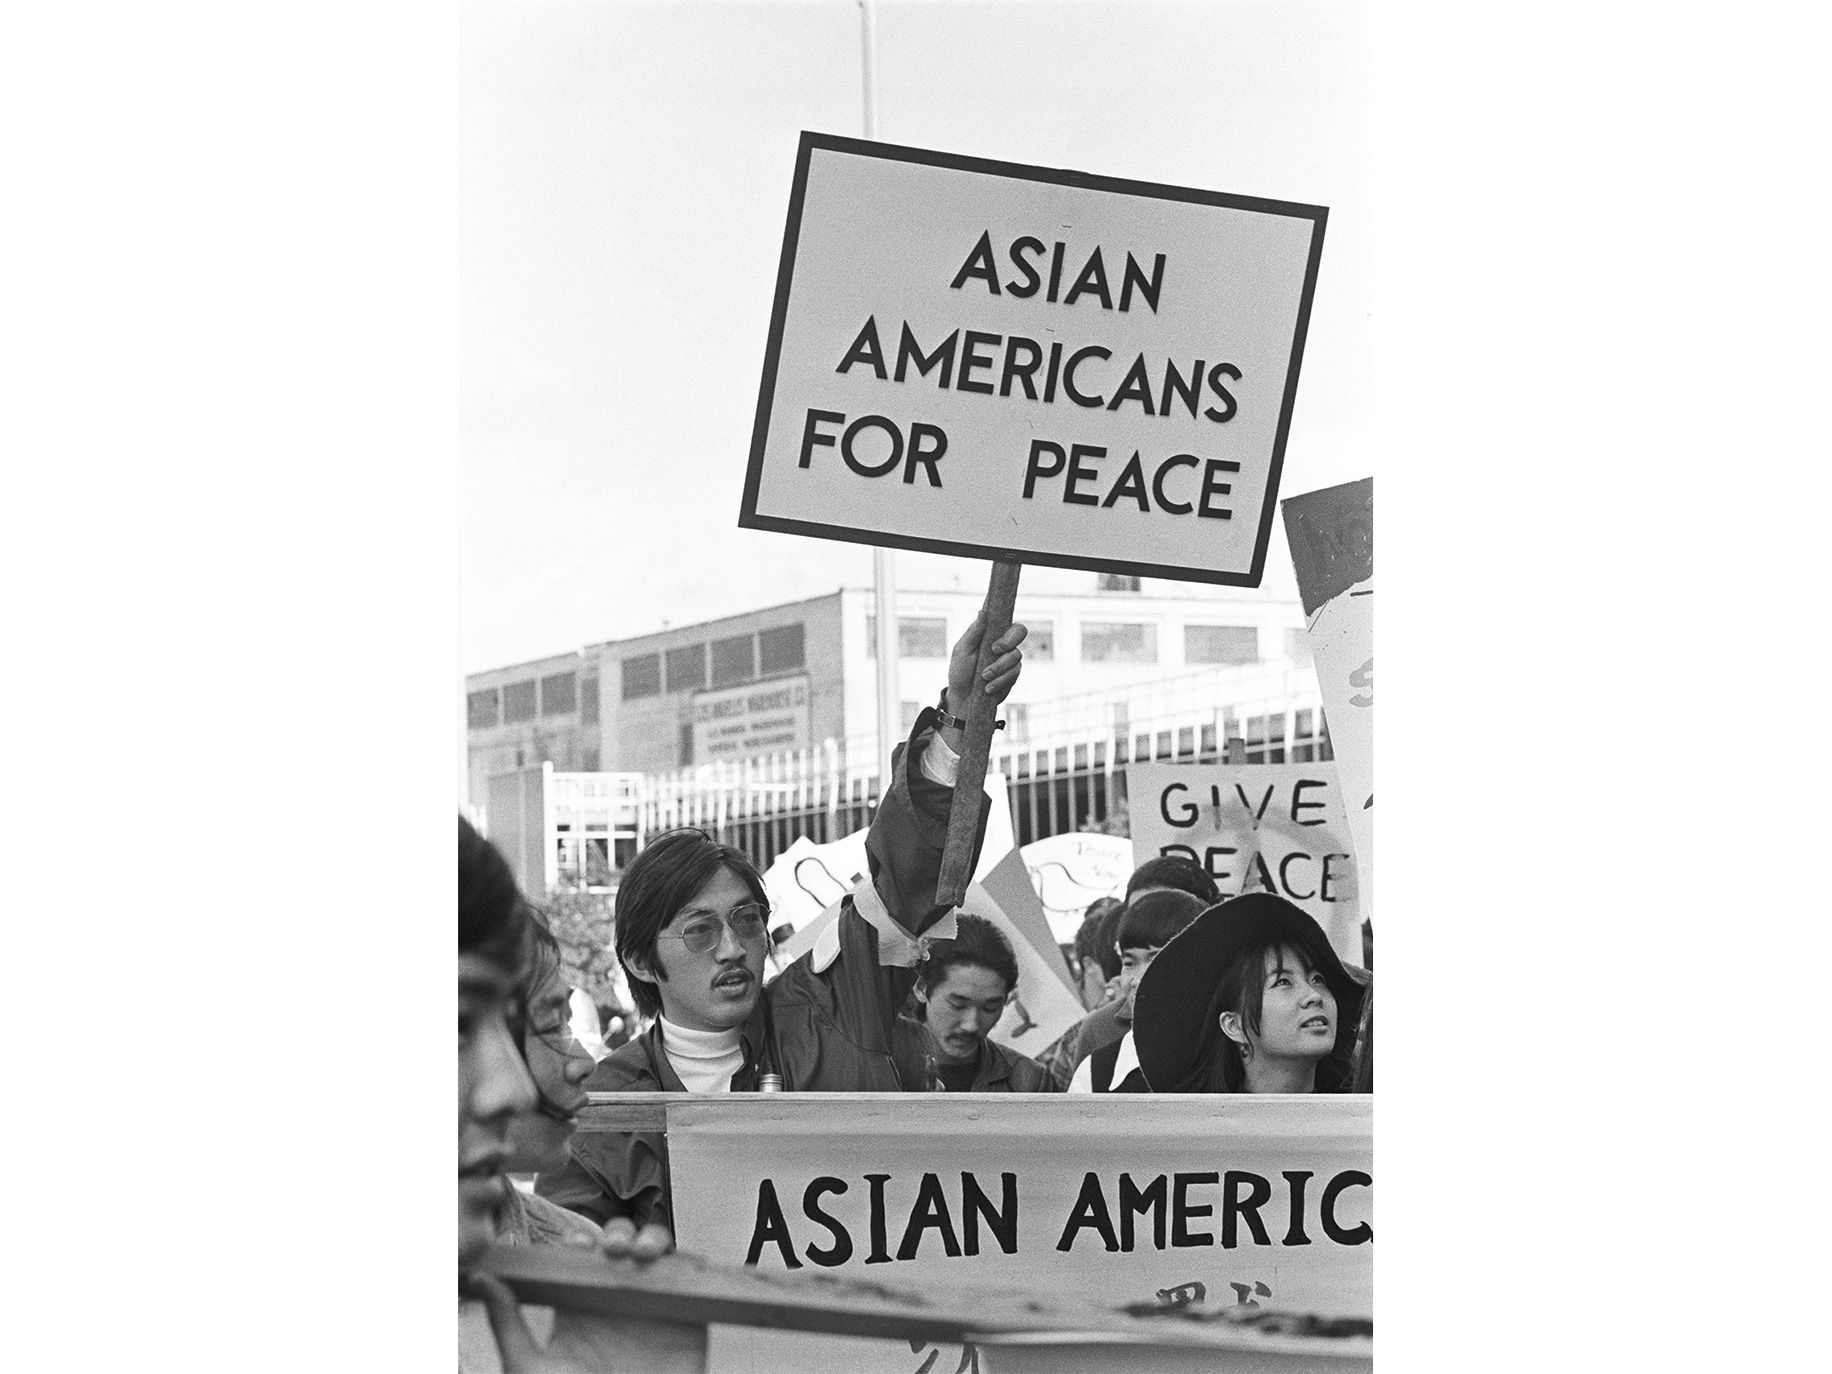 The group documented the first Asian American anti–Vietnam War march in Los Angeles's Little Tokyo neighborhood, organized by Asian Americans for Peace, May 11, 1972.